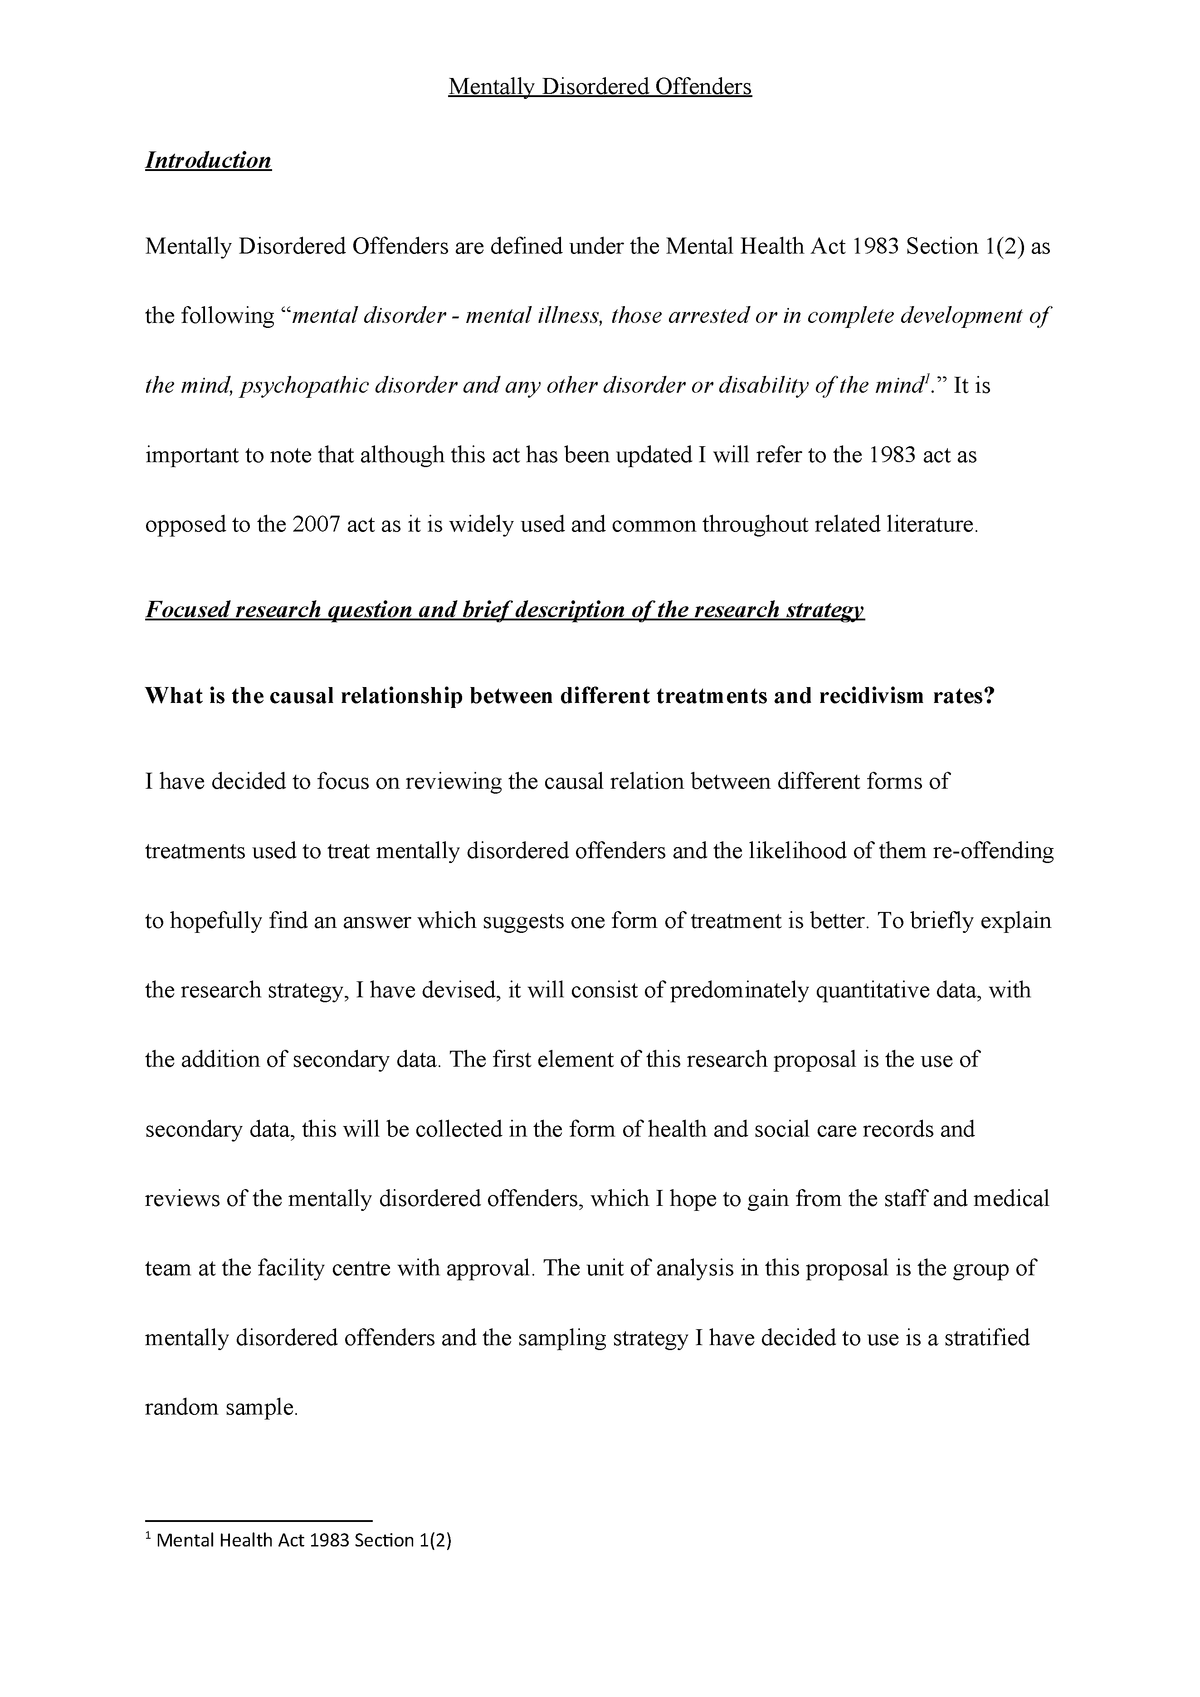 Criminology Research Proposal Questions